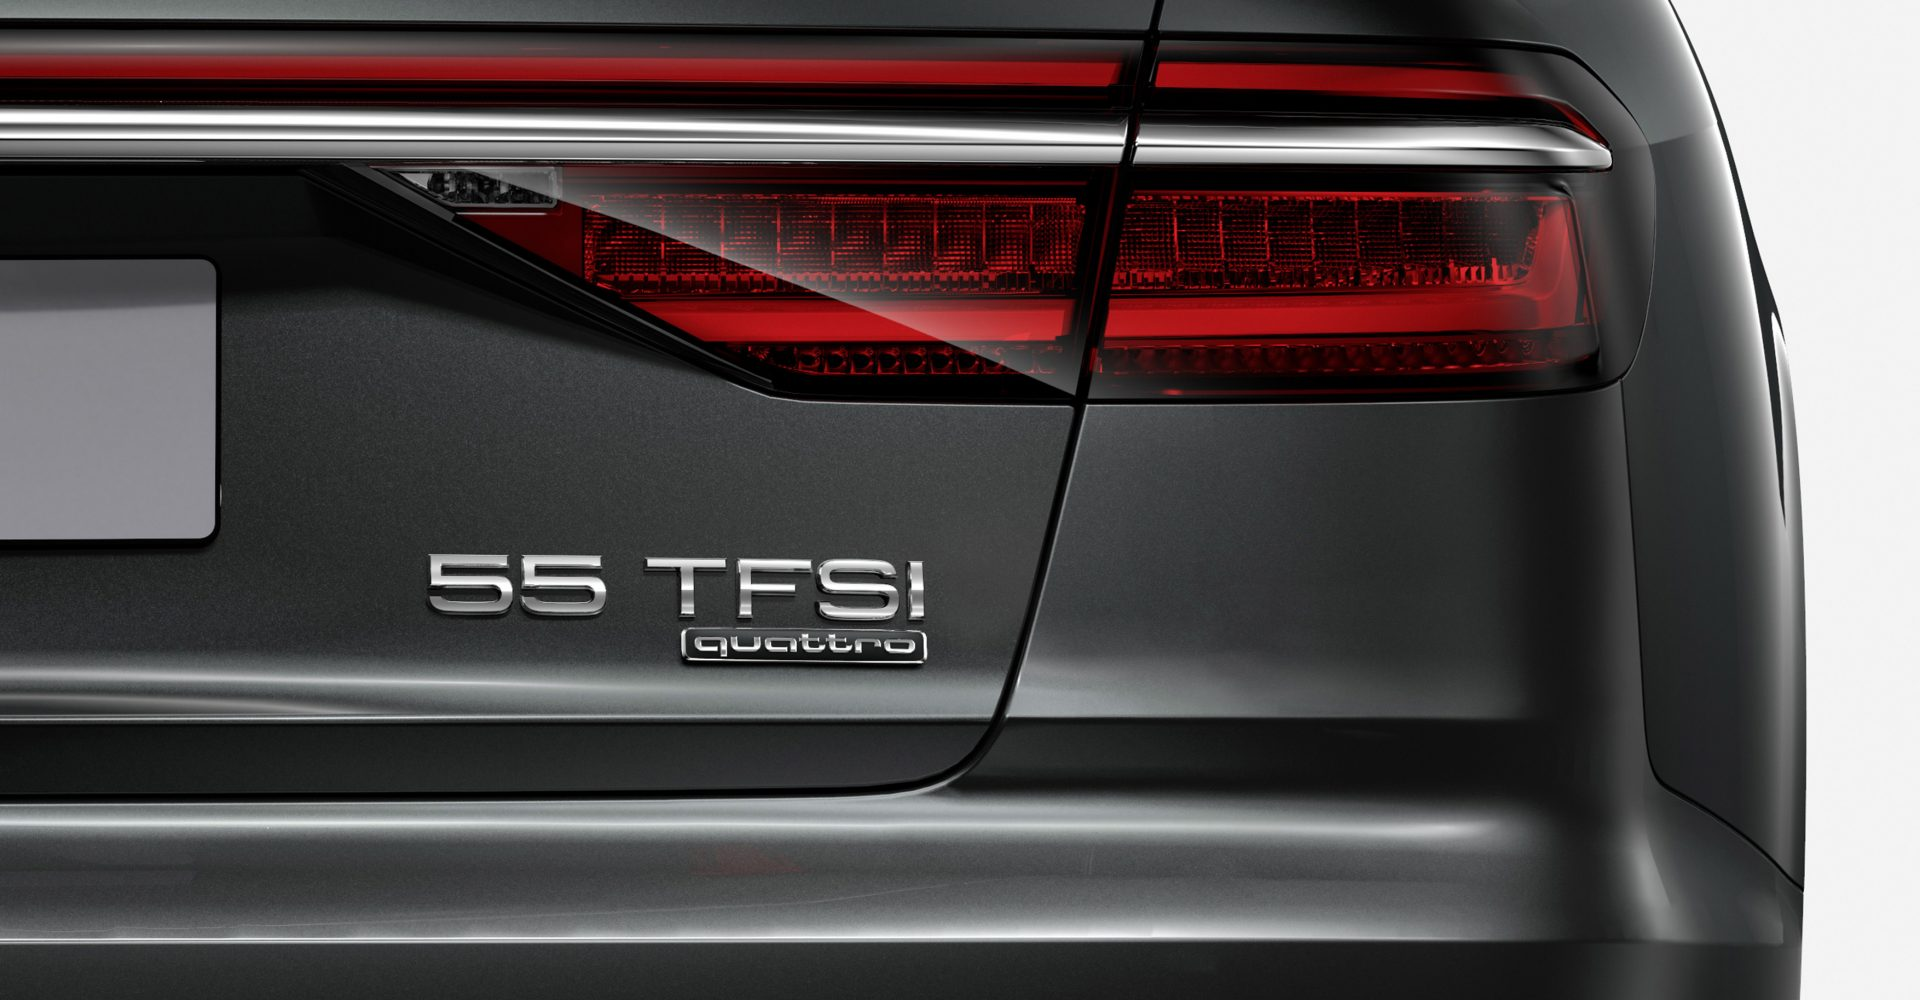 10 things less complicated than Audi's new naming system